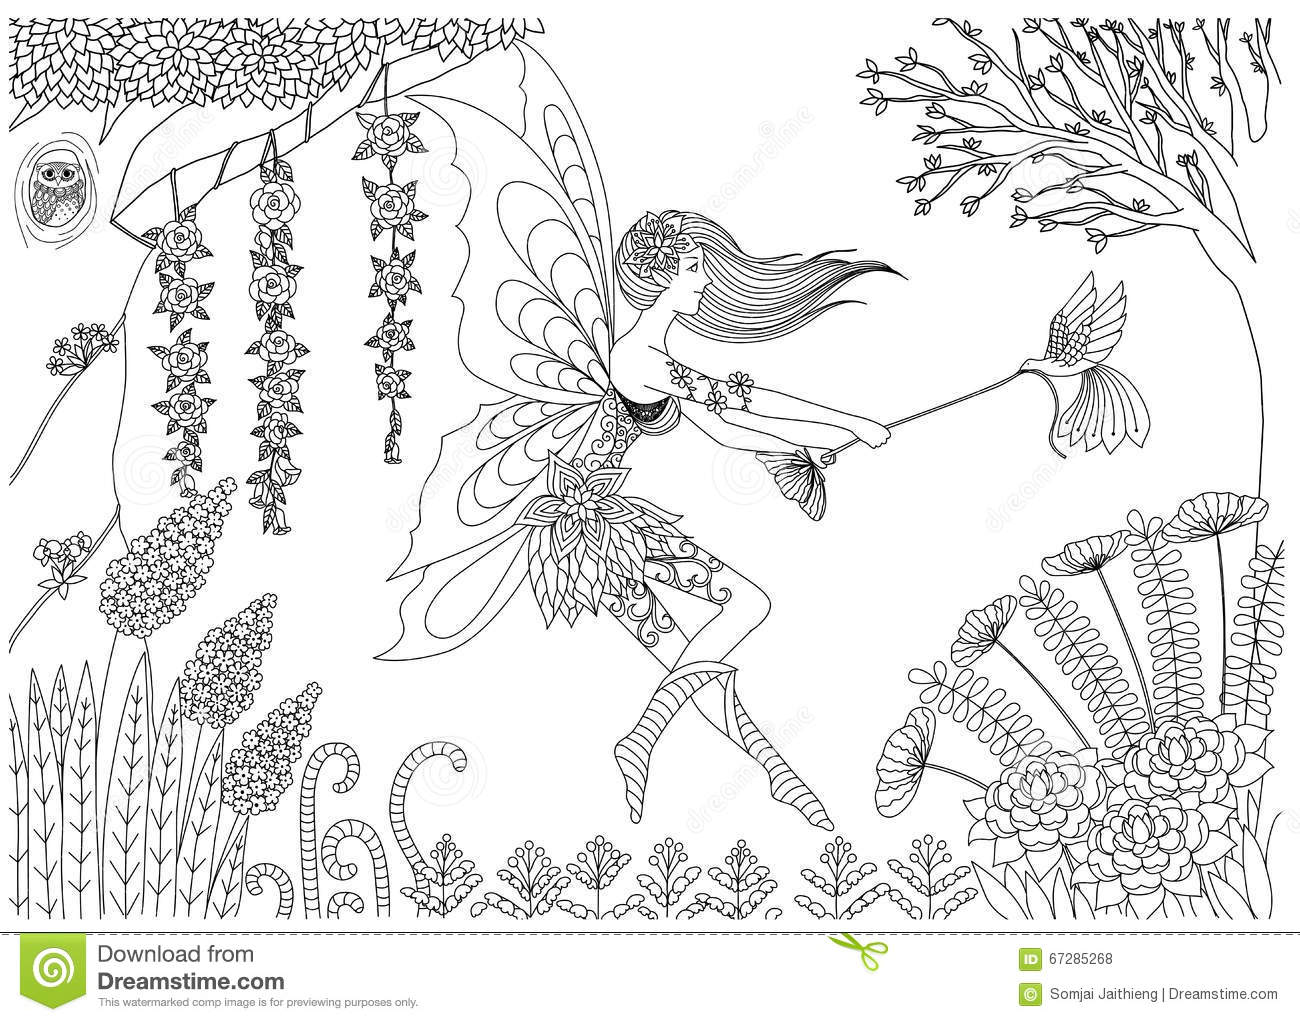 Fairy Is Playing With Bird In The Forest Design For